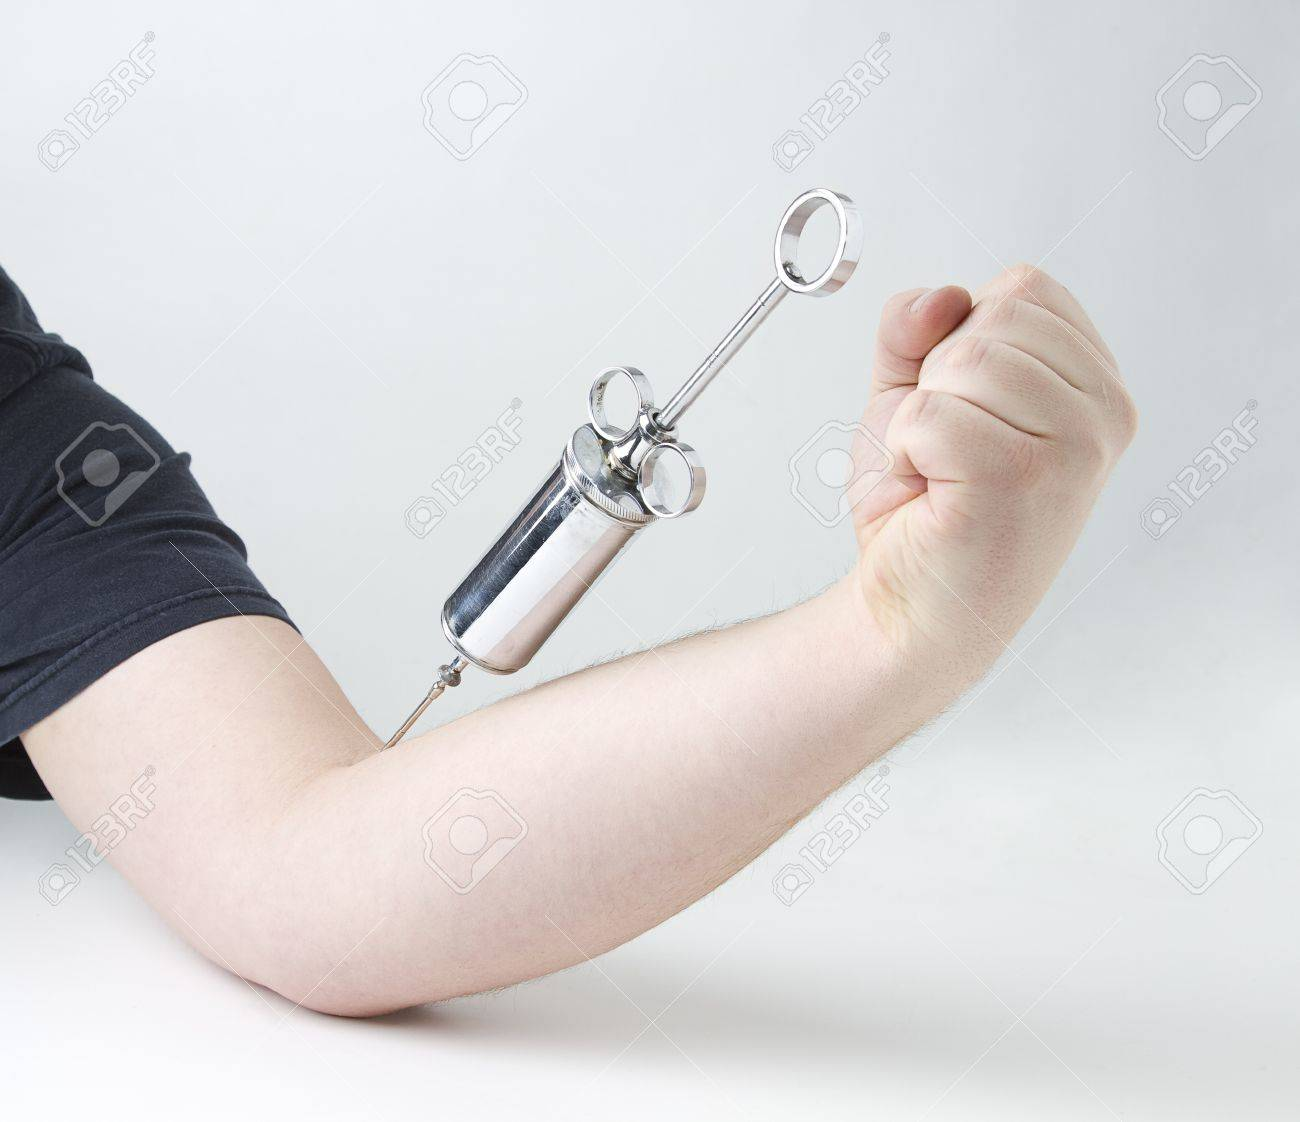 metal syringe in male arm against white background Stock Photo - 8800598